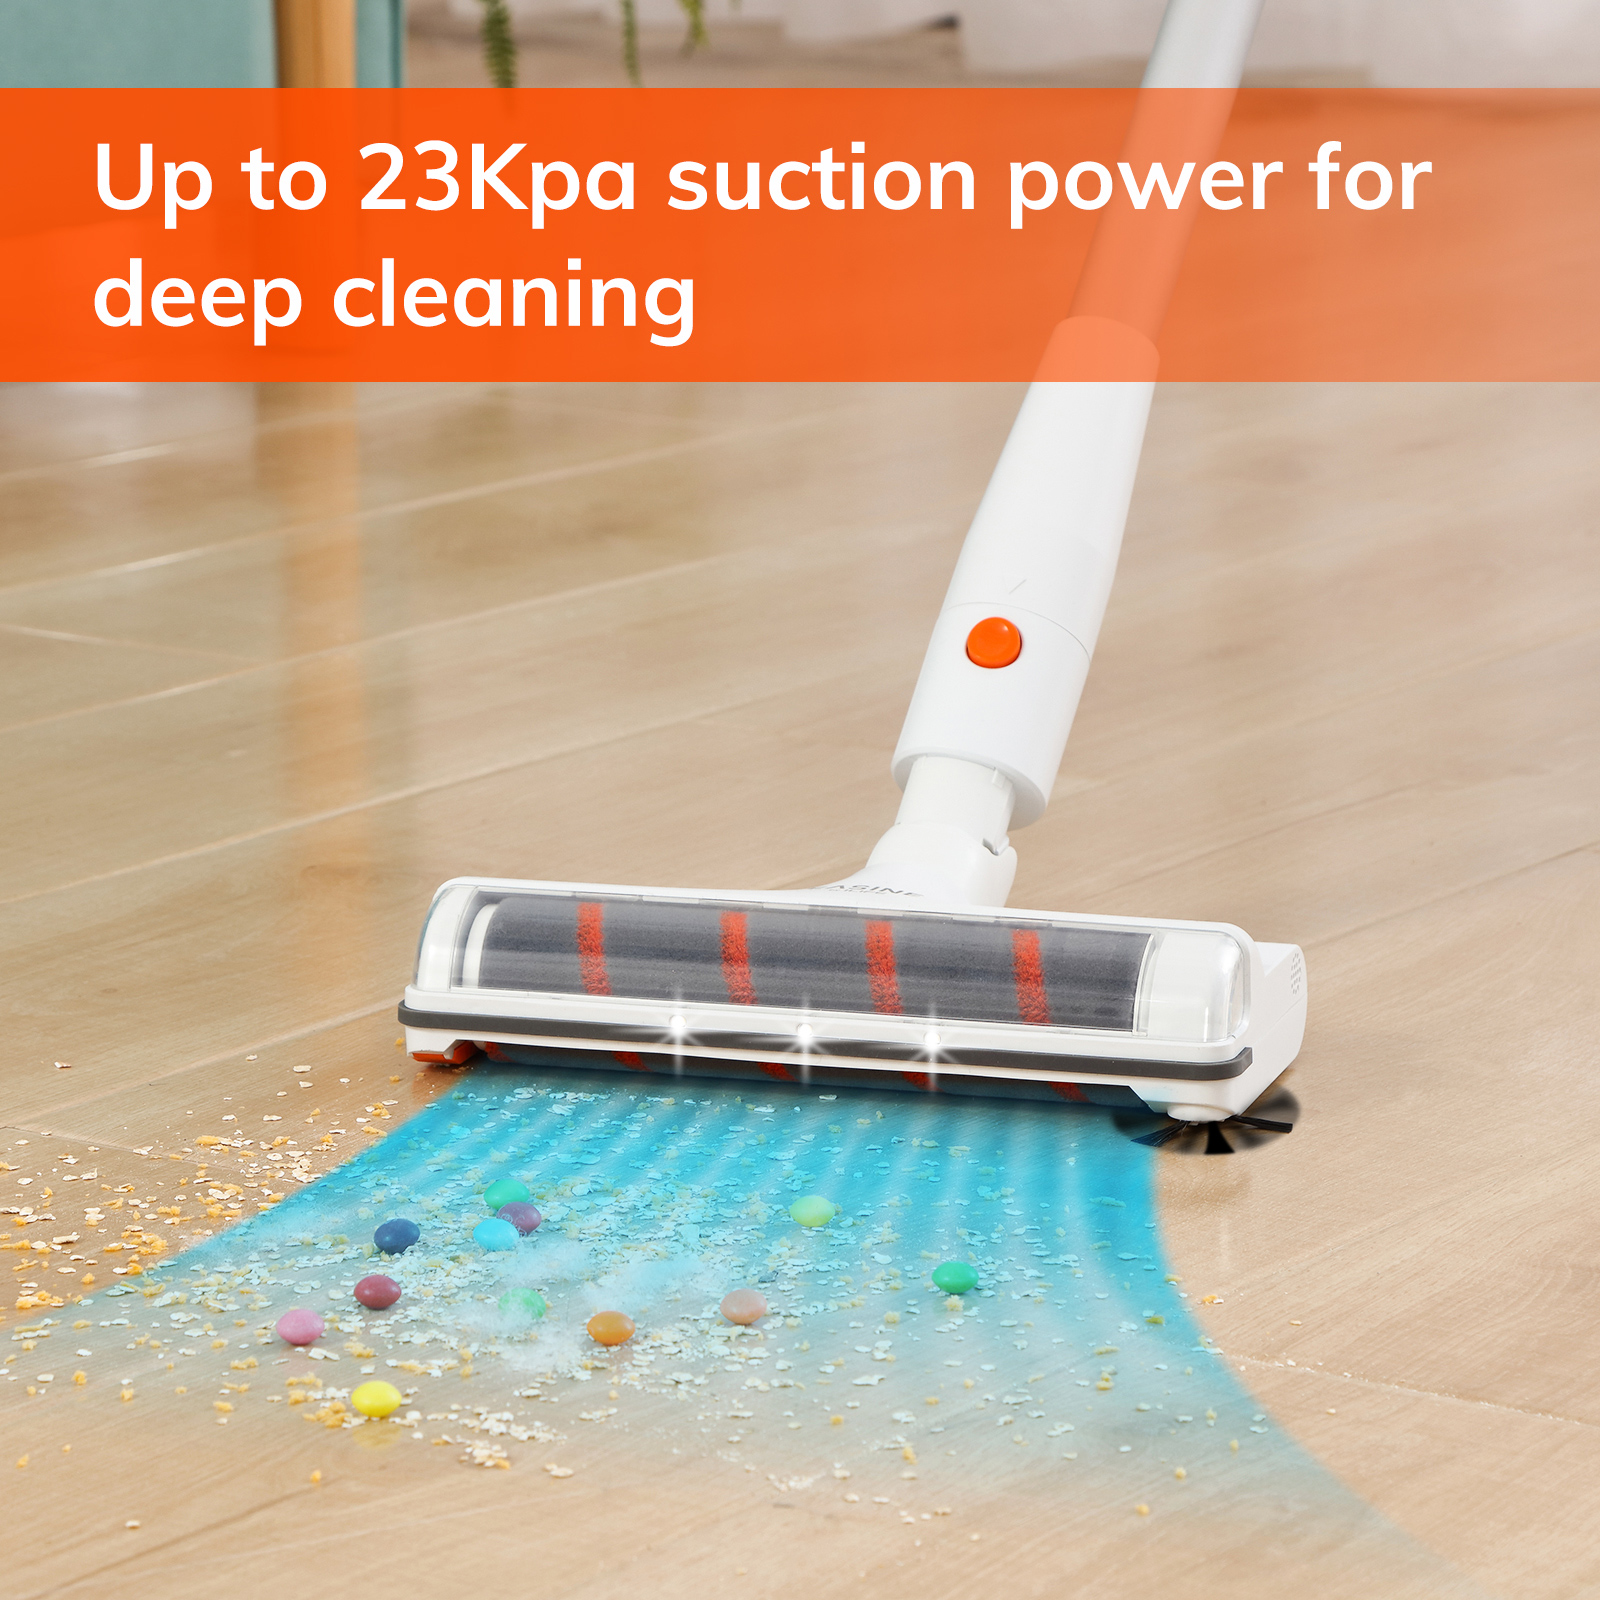 EASINE by ILIFE G80 Handheld Wirelessly Vacuum Cleaner, 23000Pa Powerful Suction, LED display, 45mins Runtime, unique Side Brush